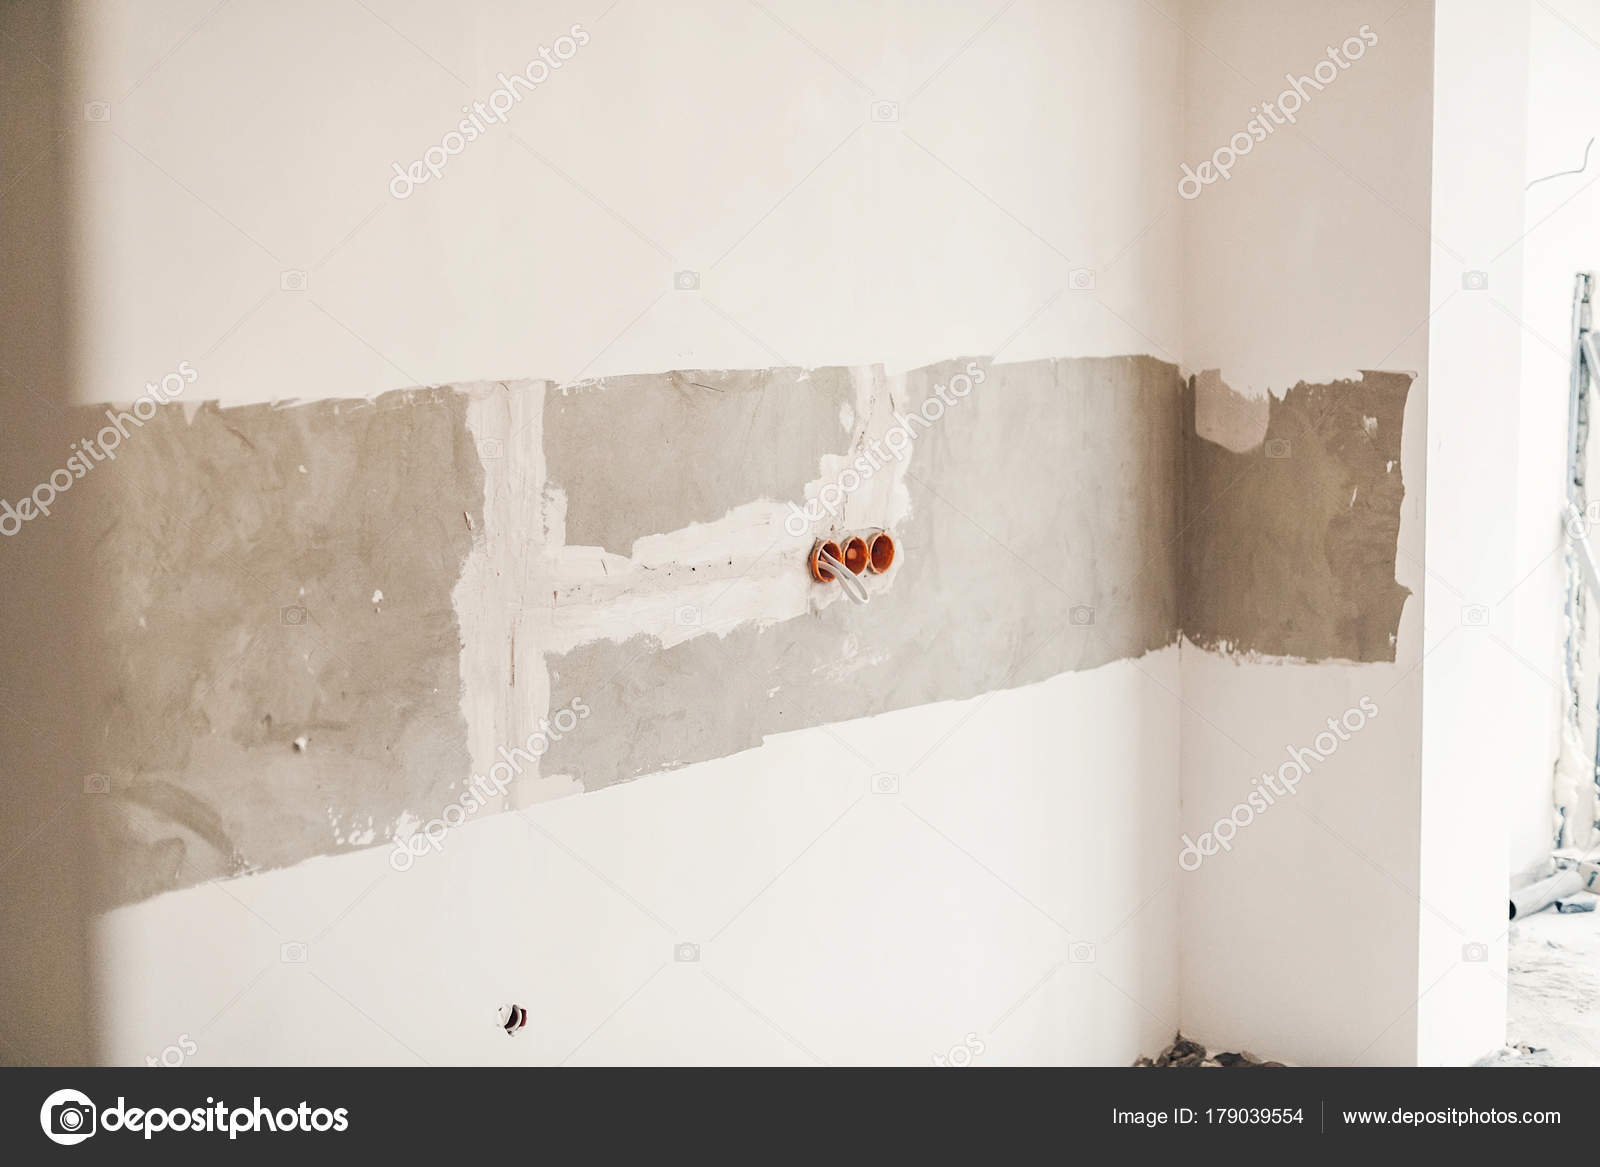 Renovation Concept Electric Wires Cables Holes Grey Cement Wall Wiring Behind Plaster Walls Stock Photo